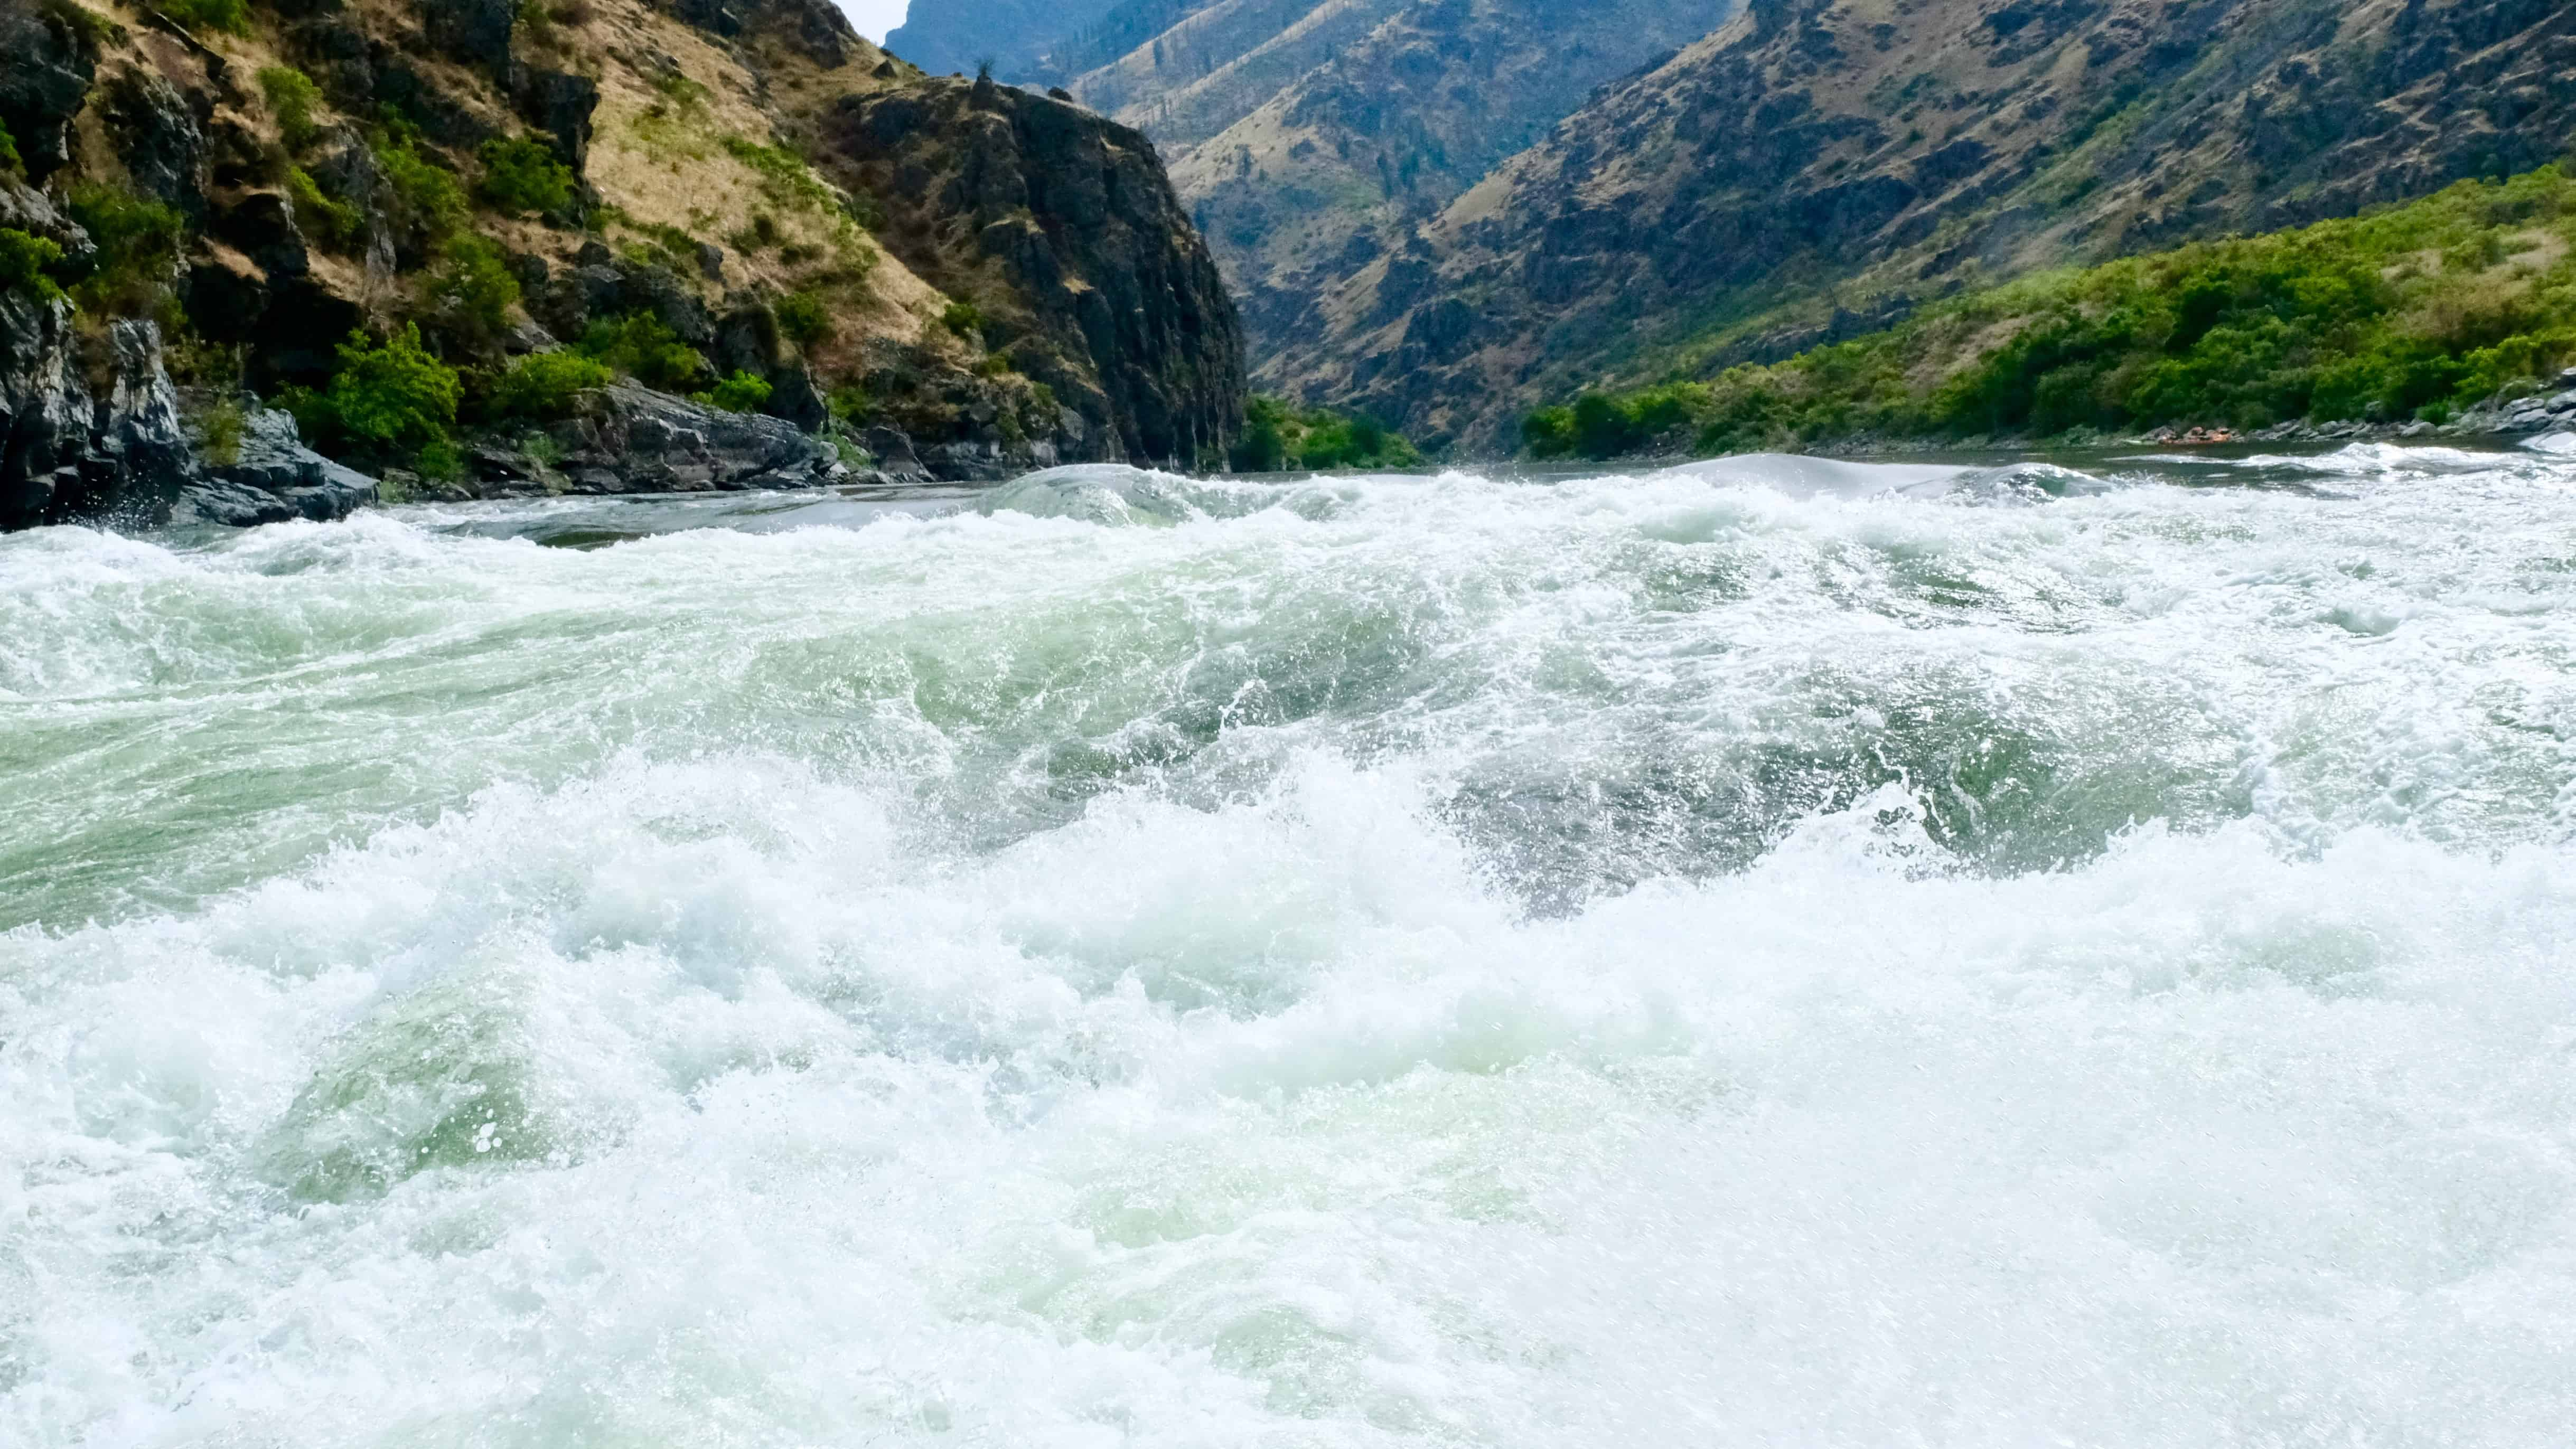 Headed upriver in Hells Canyon